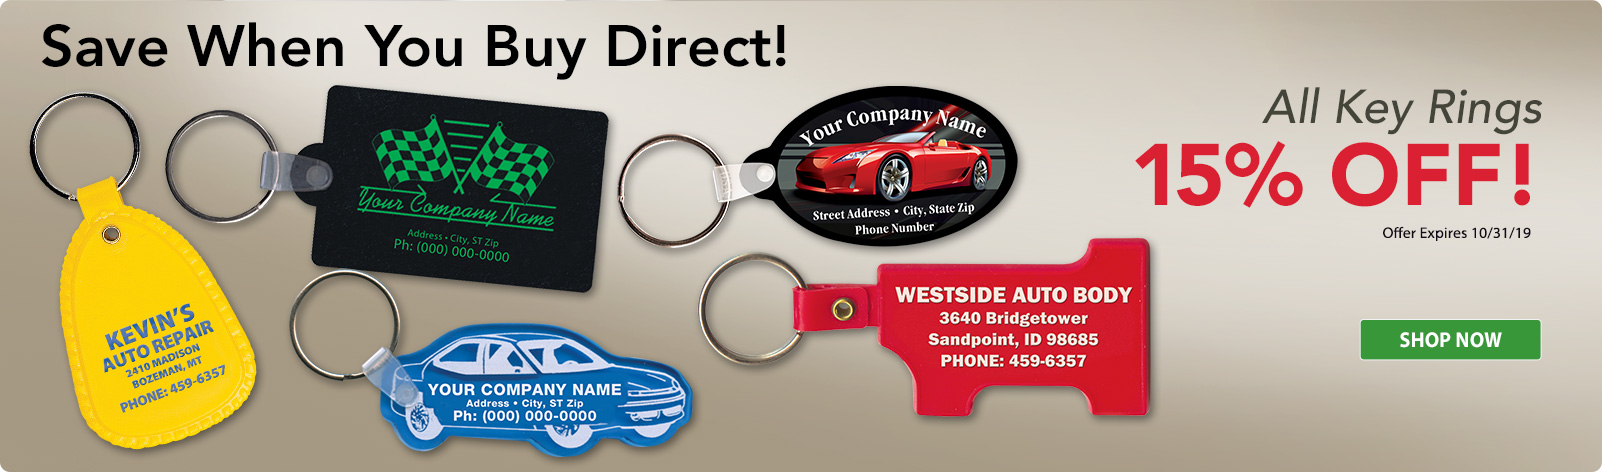 15% Off All Key Rings